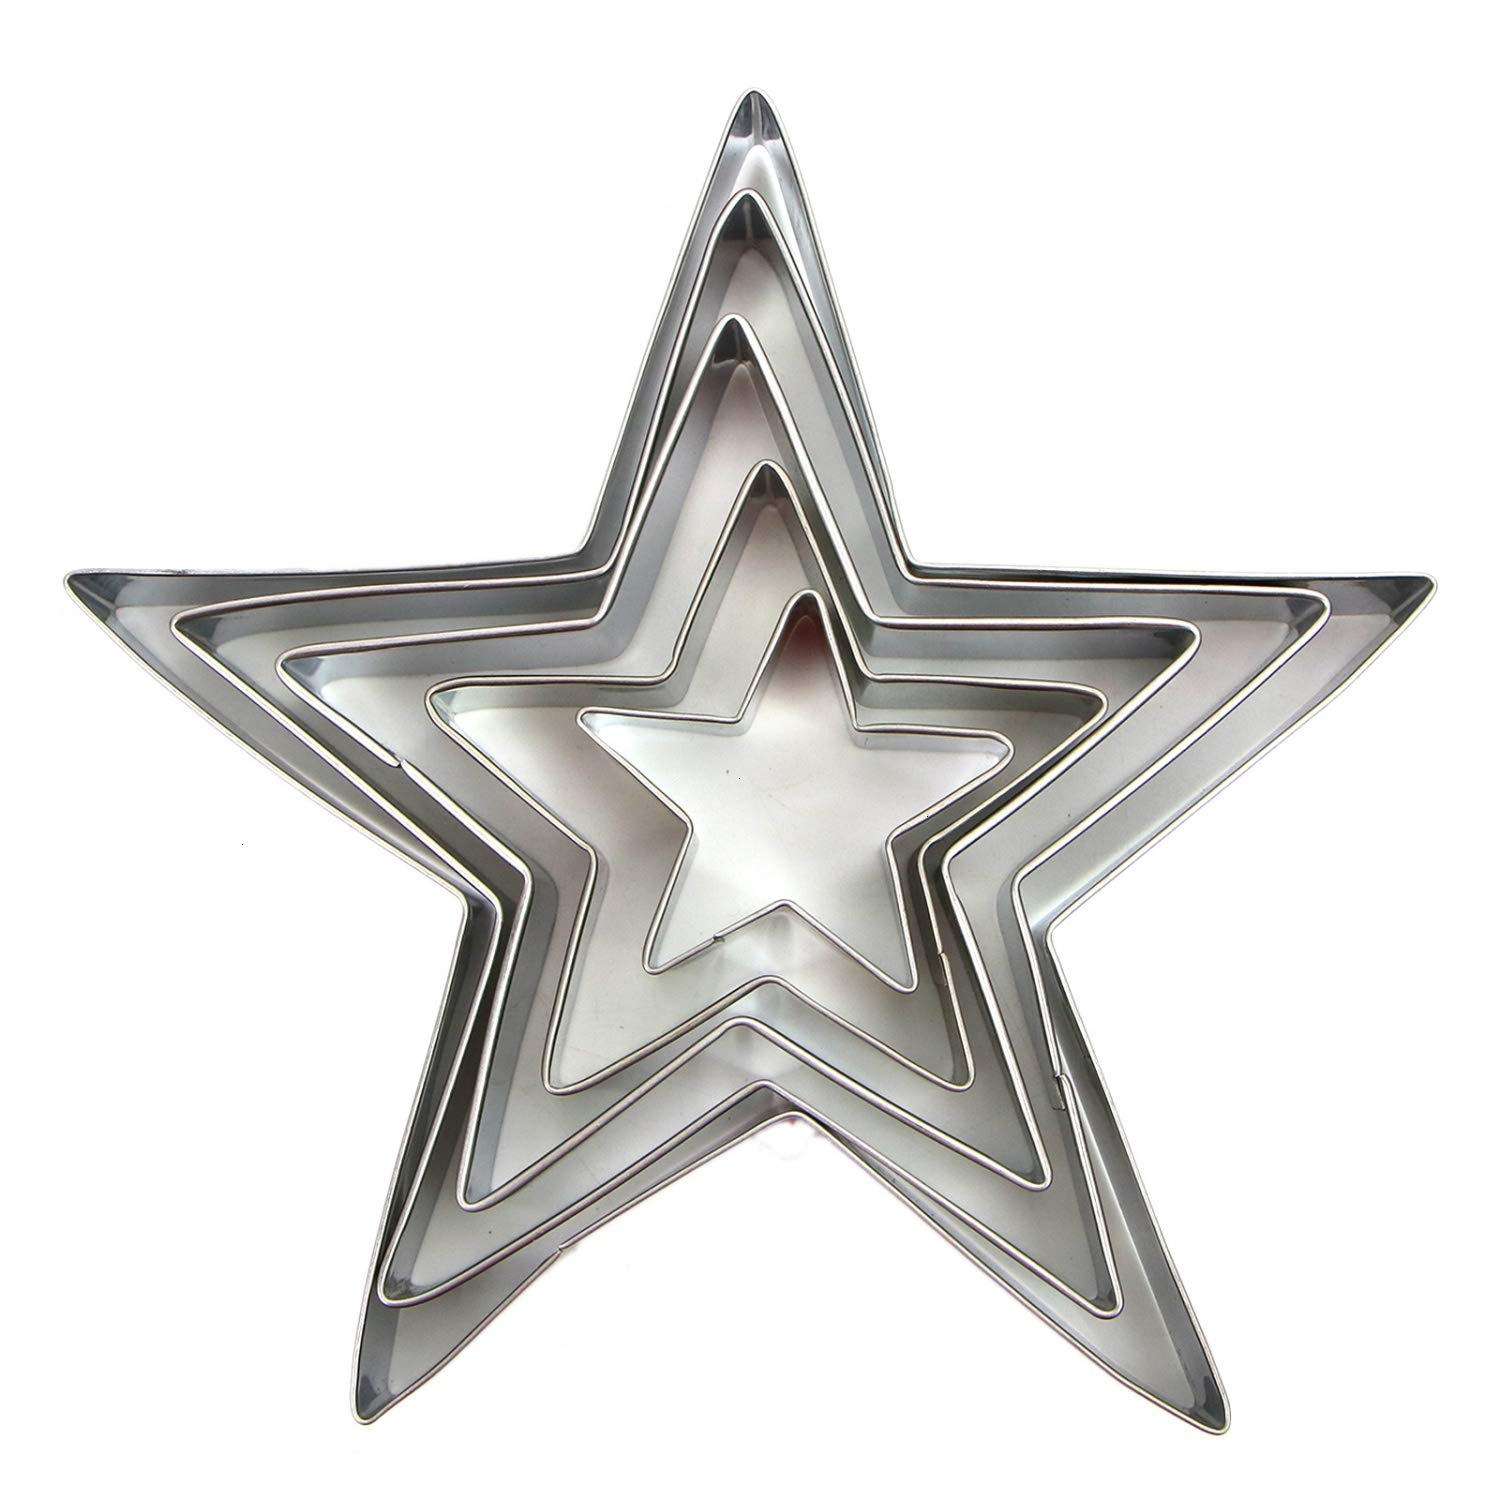 Monrocco 5 PCS Stainless Steel Star Cookie Cutters Set for Pressing Cookies Sandwich and Bread